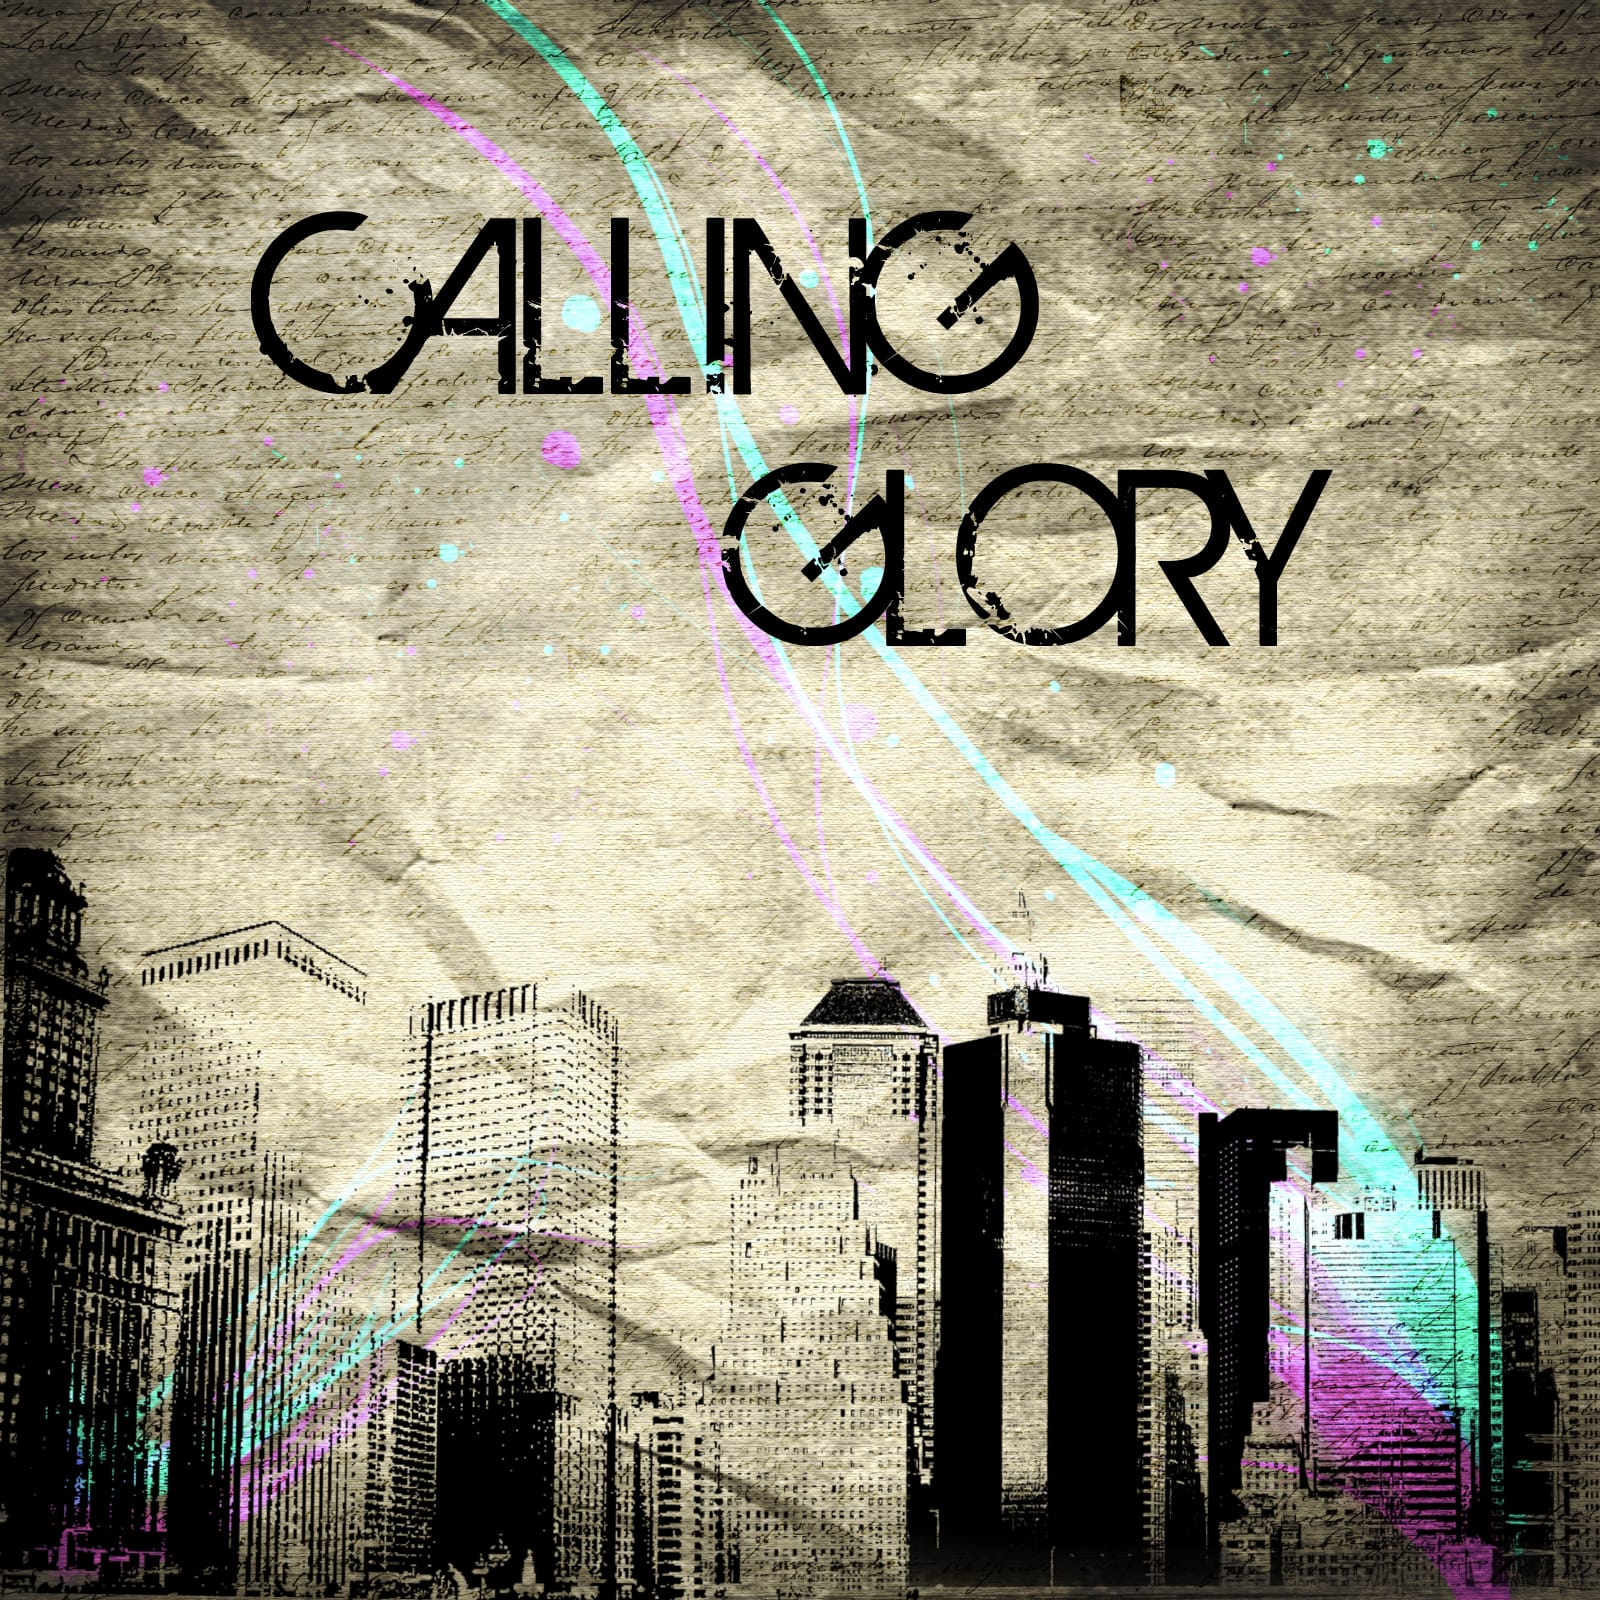 Christian Rock Bands in Tennesse, Calling Glory